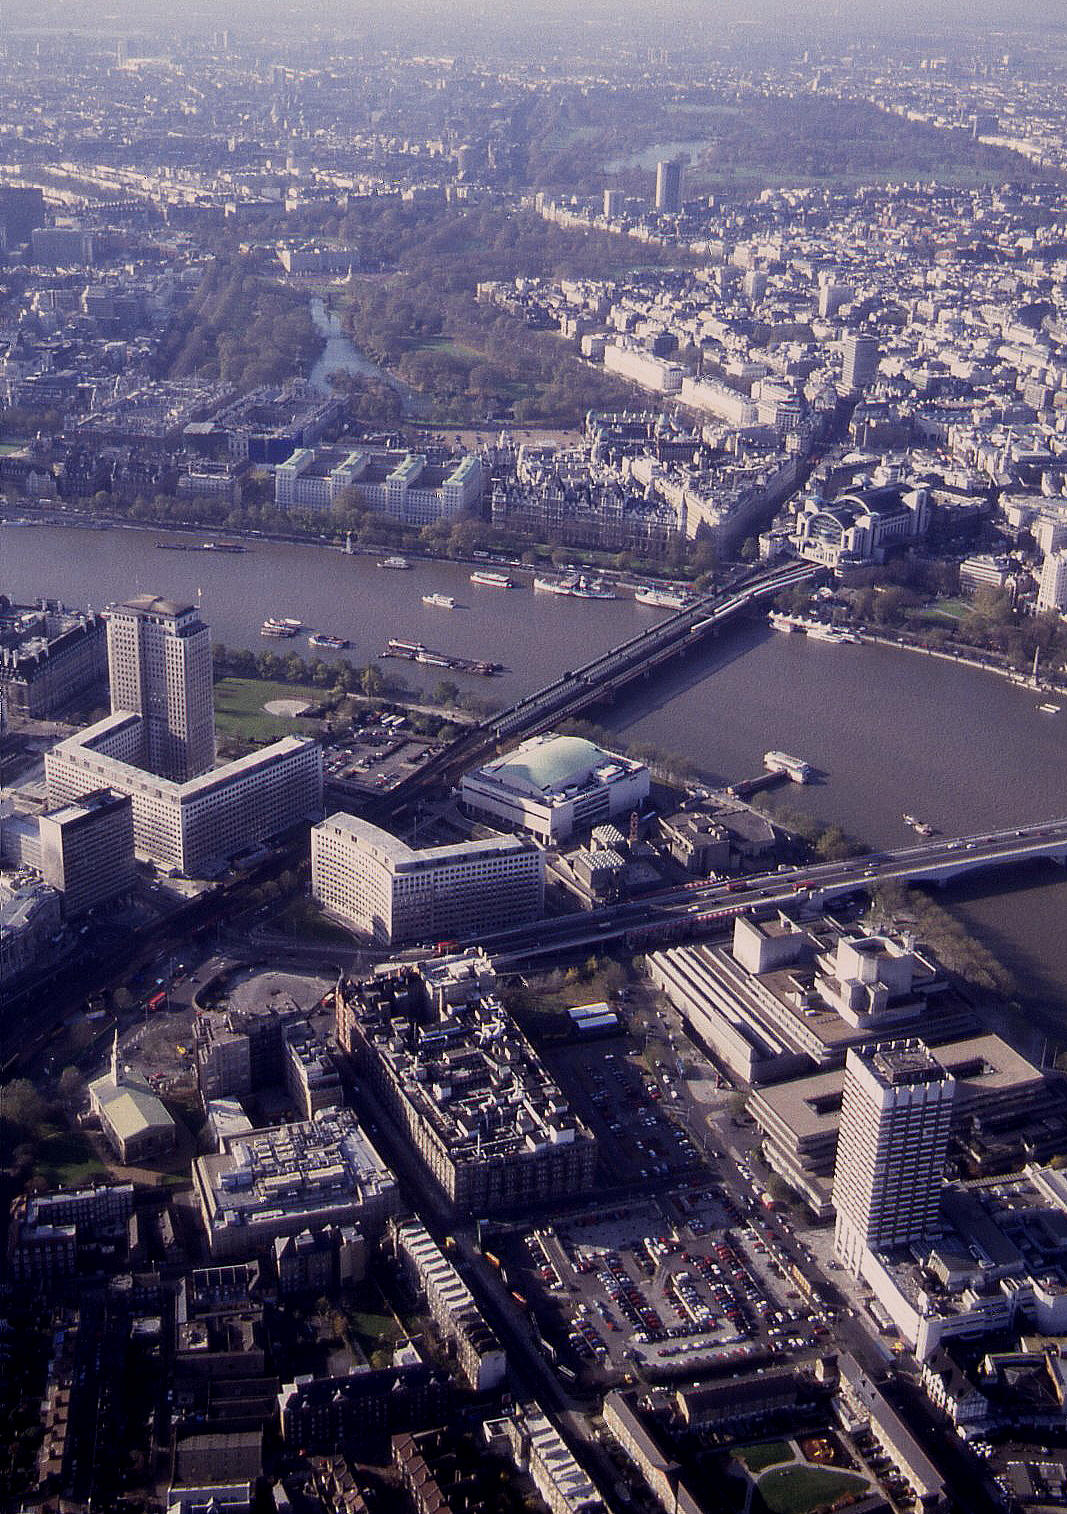 Another view of central London in 1993